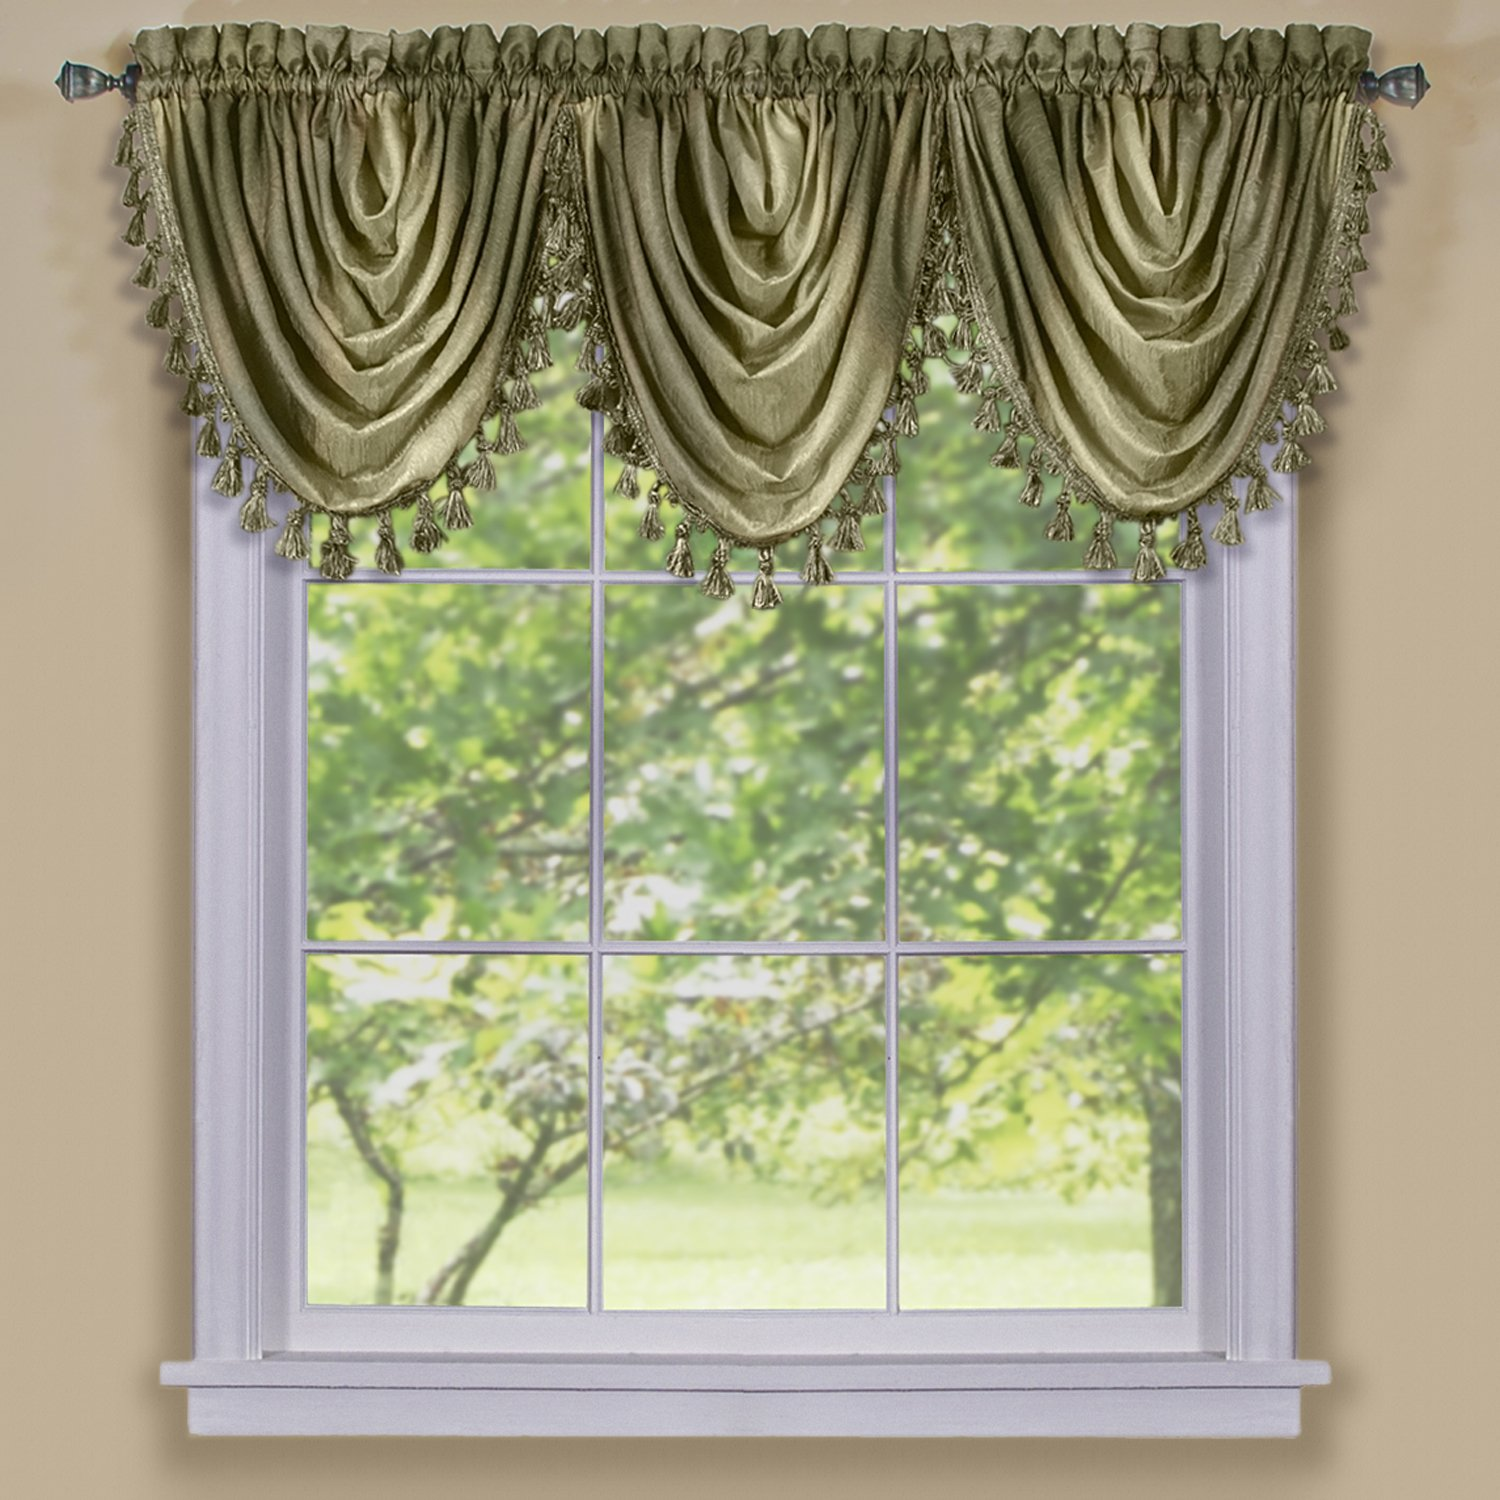 Chocolate Achim Imports OMWFVLCH06 Achim Home Furnishings Ombre Waterfall Valance